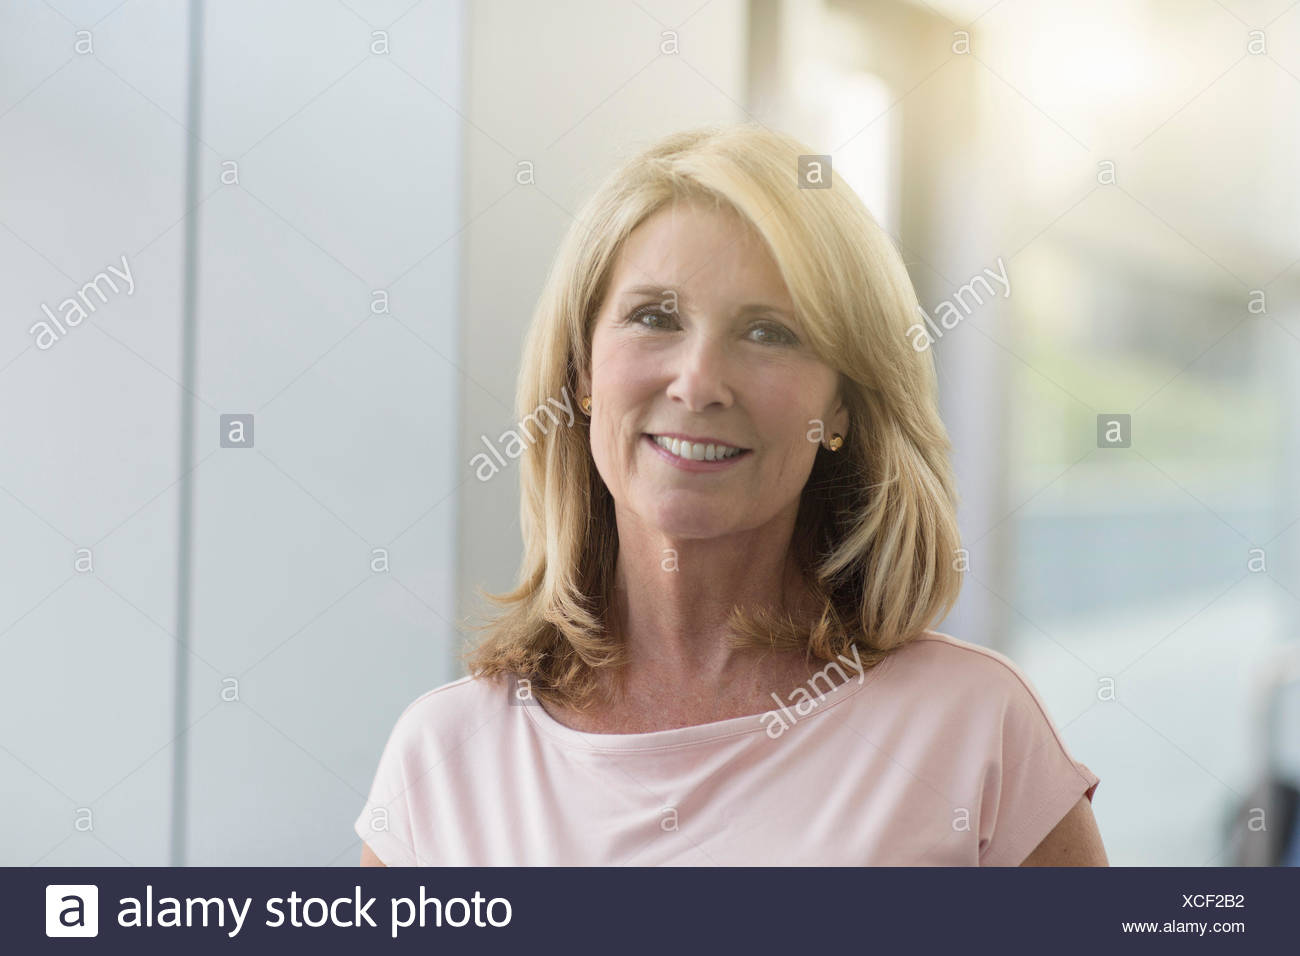 Mature woman with blonde hair, portrait - Stock Image